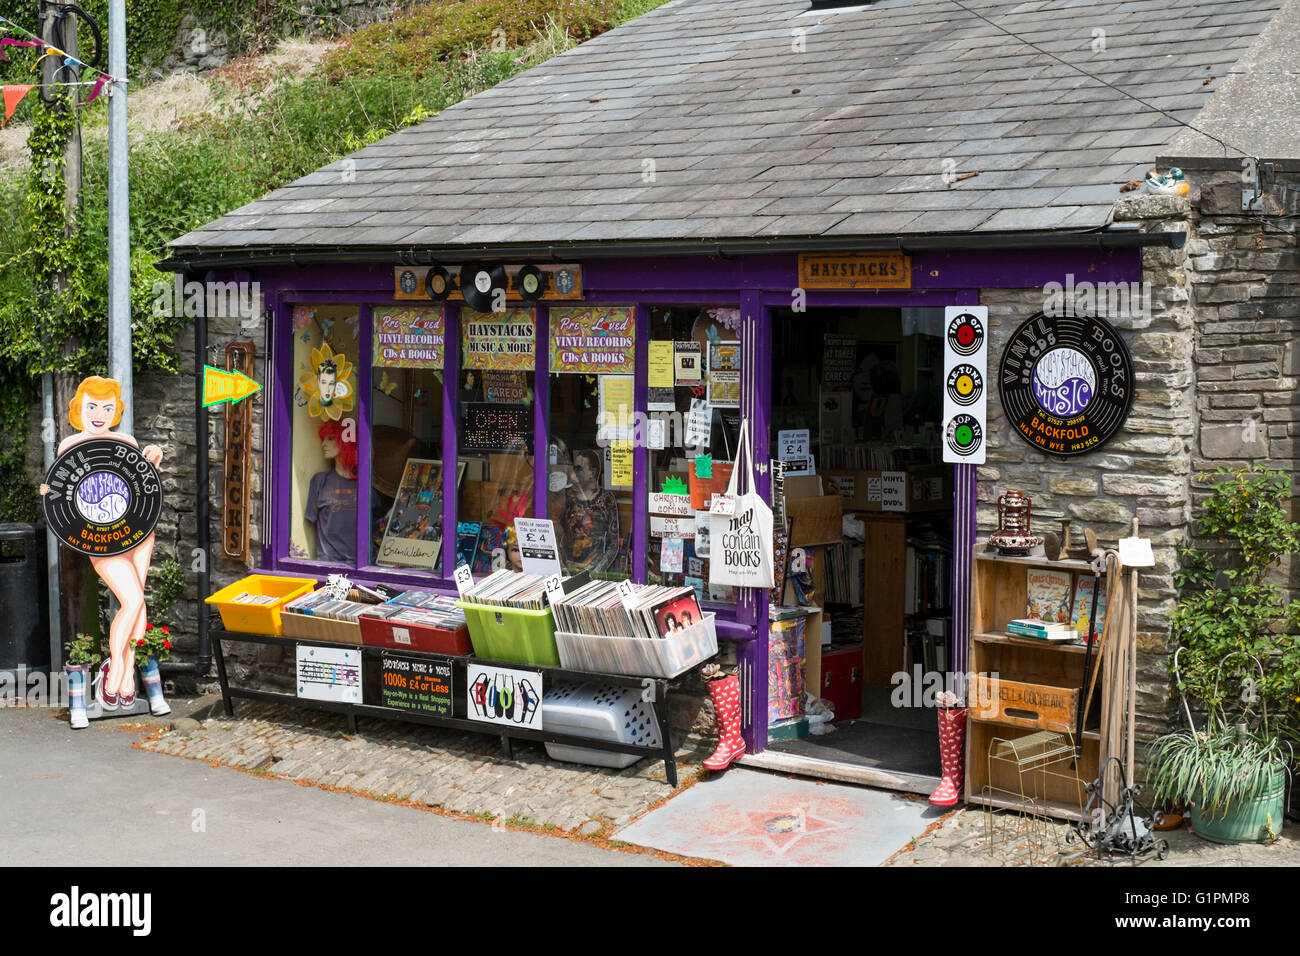 Hay-on-Wye a small town famous for book shops and a literary festival in Powys Wales UK. Haystacks Book and Record - Stock Image